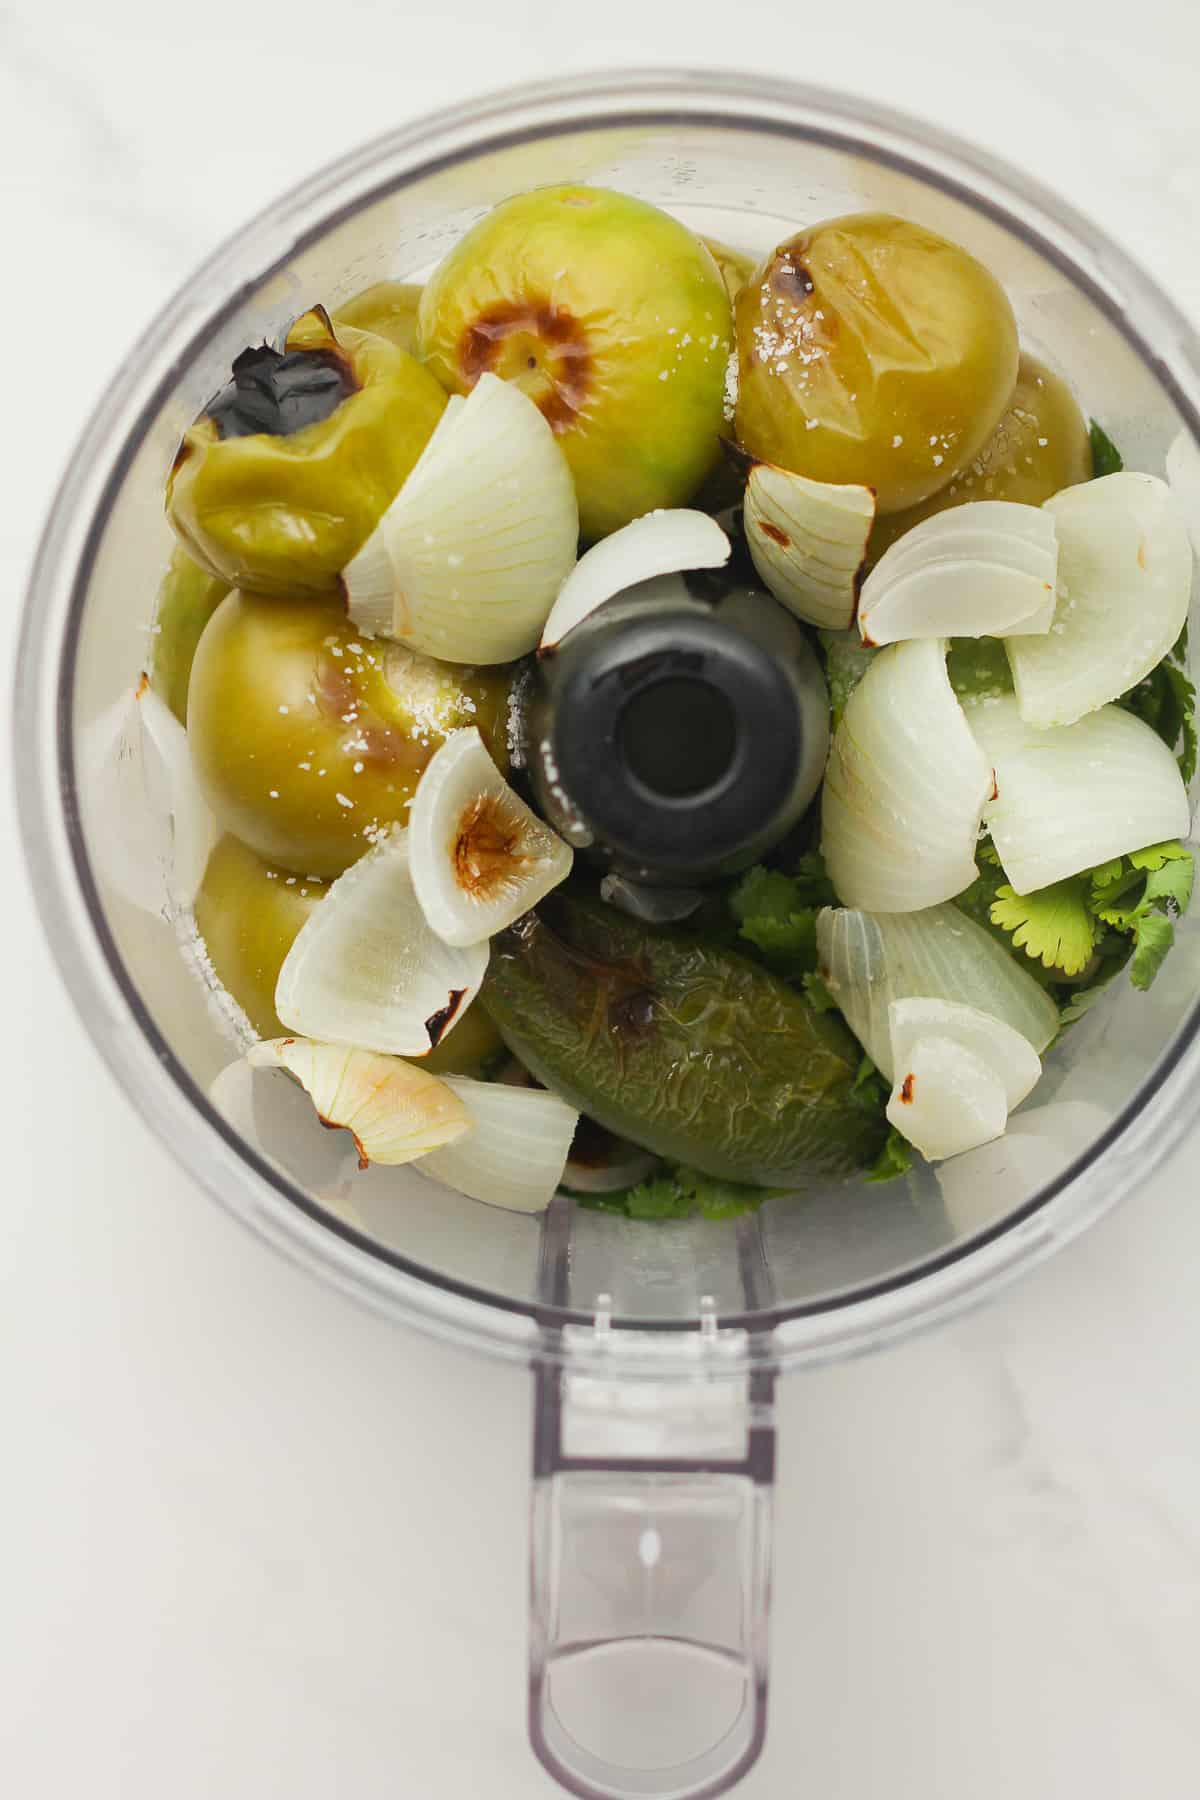 a food processor of the ingredients for salsa verde.